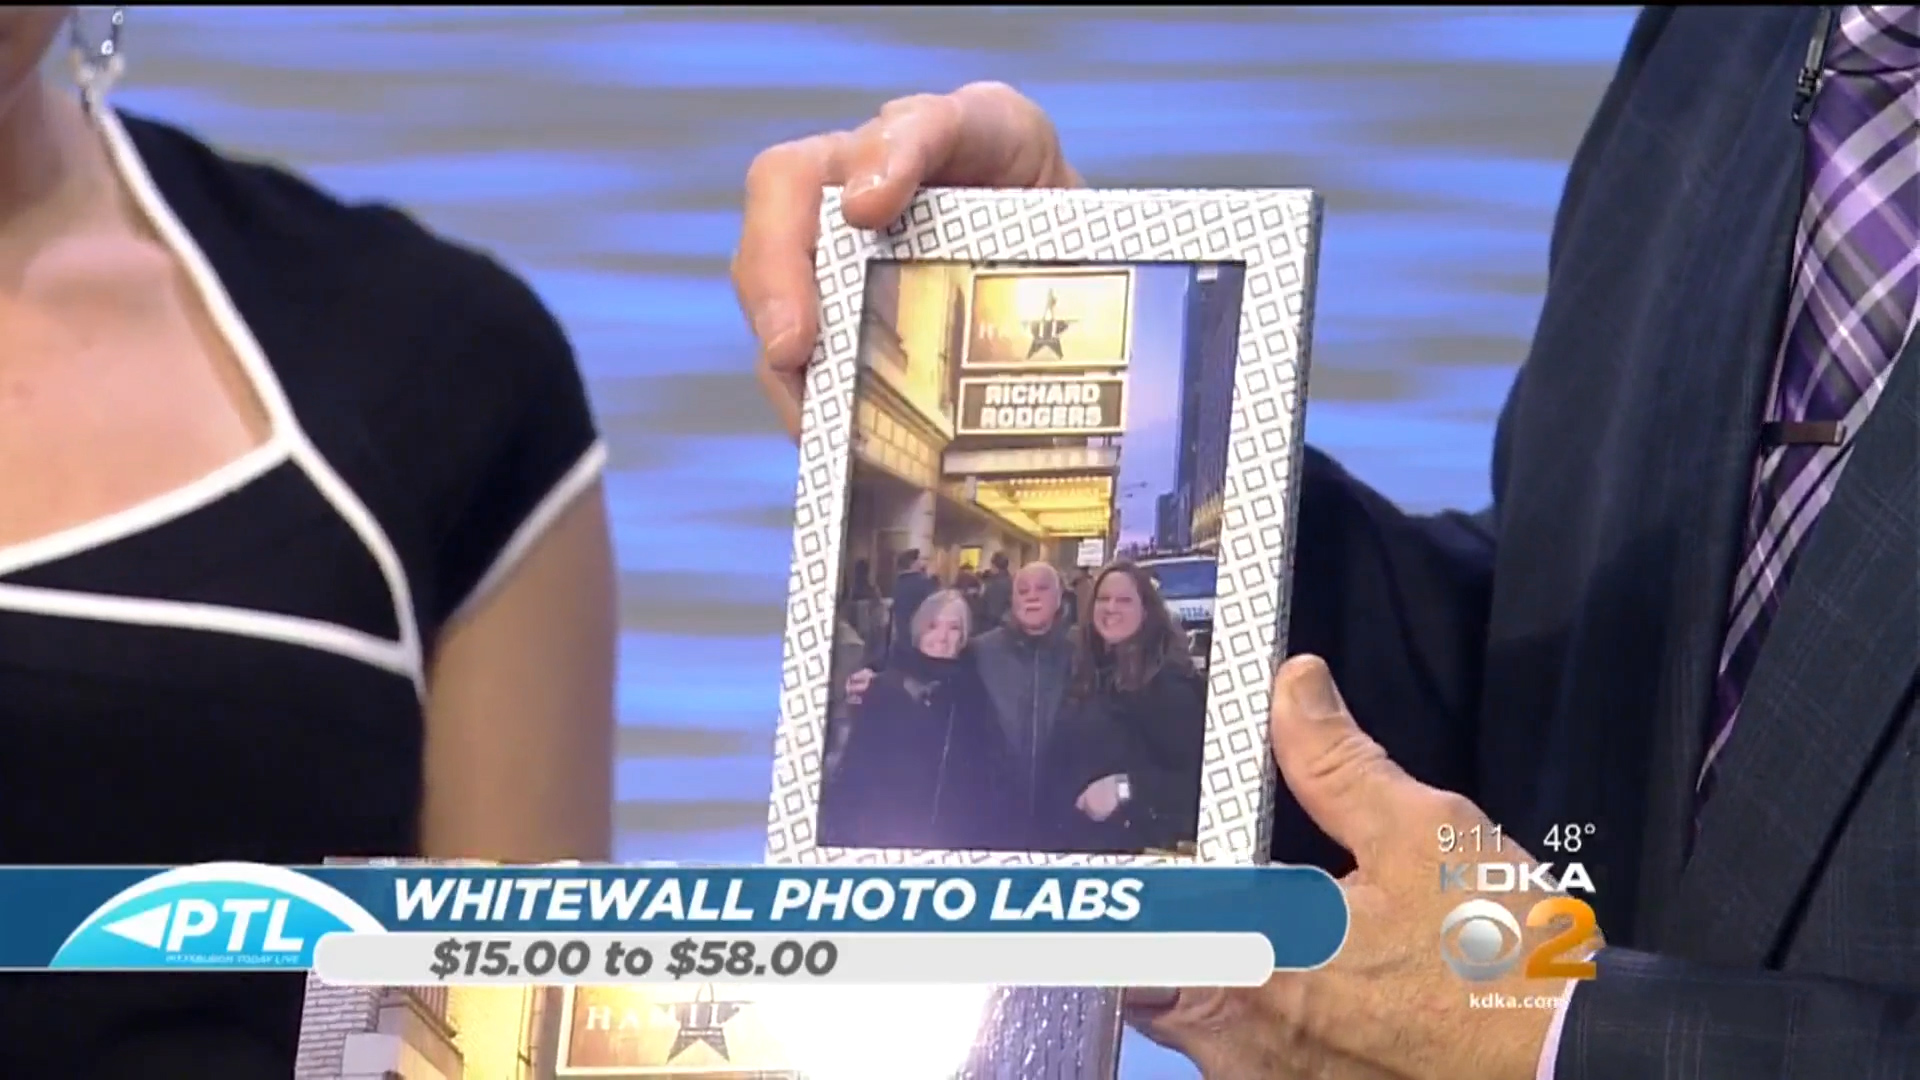 WHITEWALL PHOTO LABS - Starting from $15Shop Now